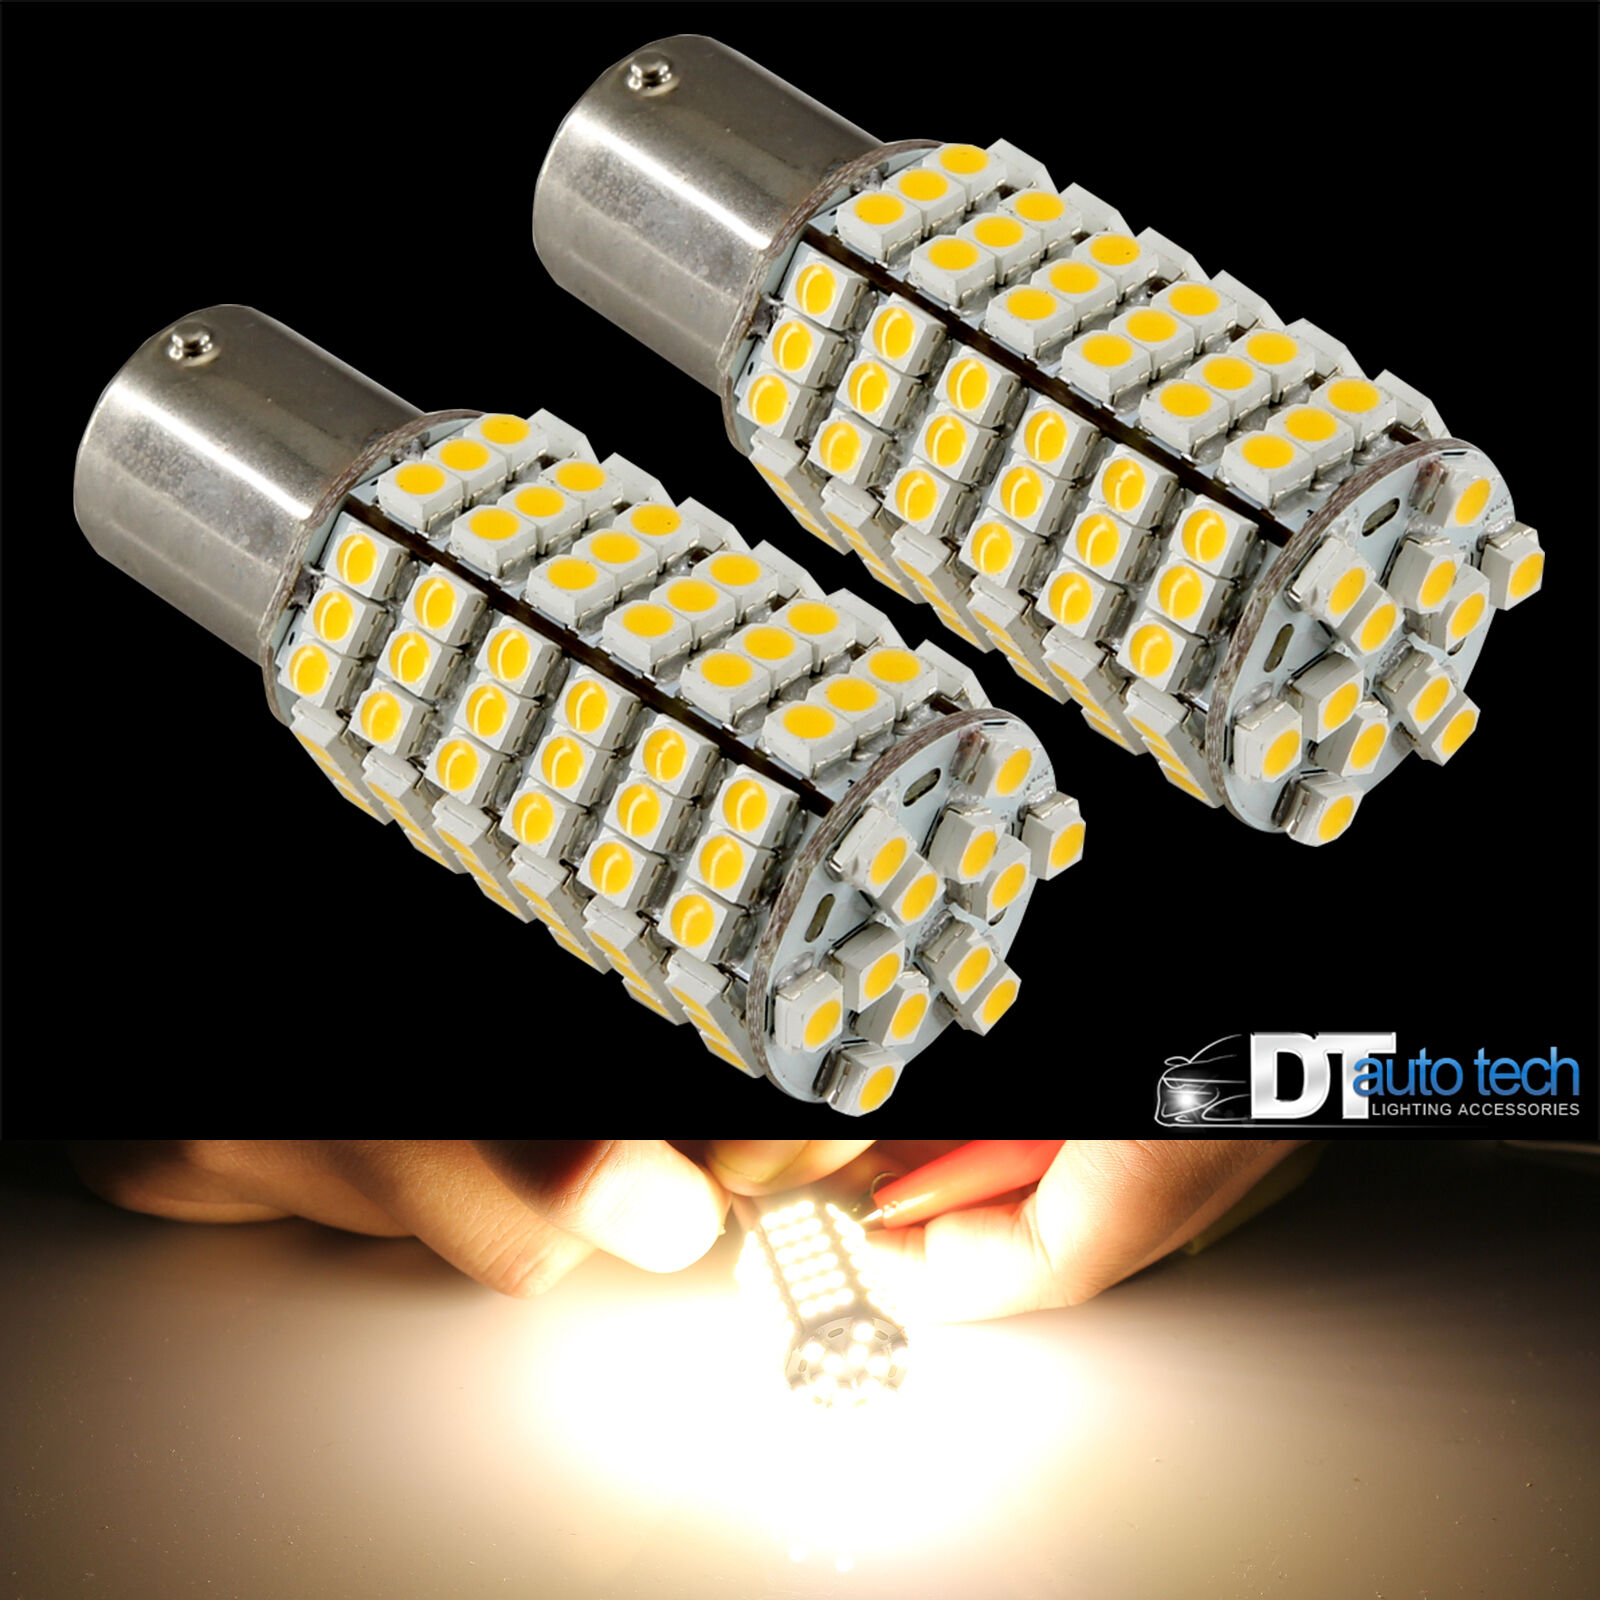 10x 1156 ba15s rv trailer 12v led lights bulbs 120 smd warm white ebay. Black Bedroom Furniture Sets. Home Design Ideas